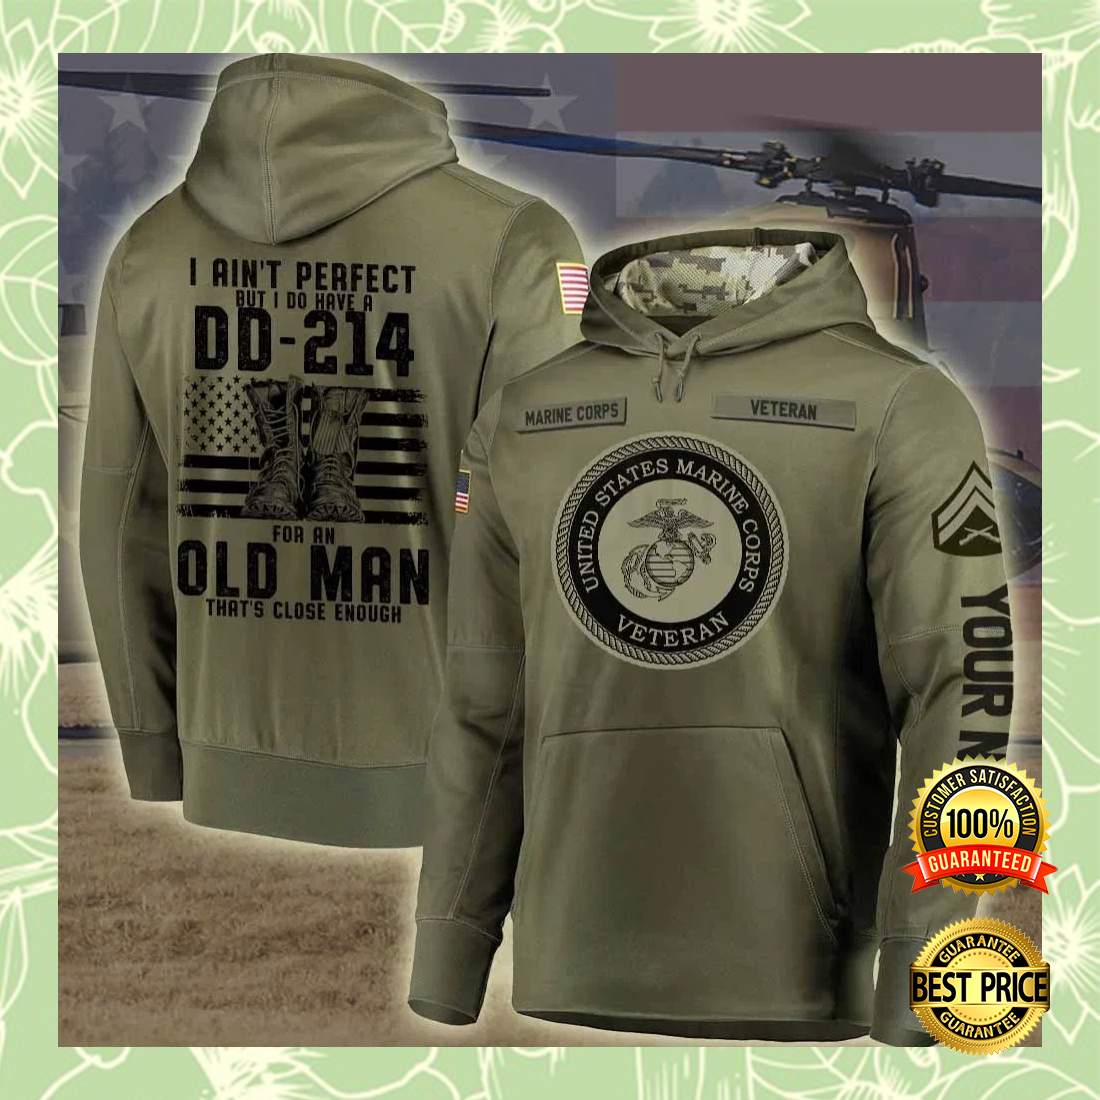 Personalized US marine corps i ain't perfect but i do have a dd 214 for an old man all over printed 3D hoodiePersonalized Us Marine Corps I Ain't Perfect But I Do Have A Dd 214 For An Old Man All Over Printed 3d Hoodie 5